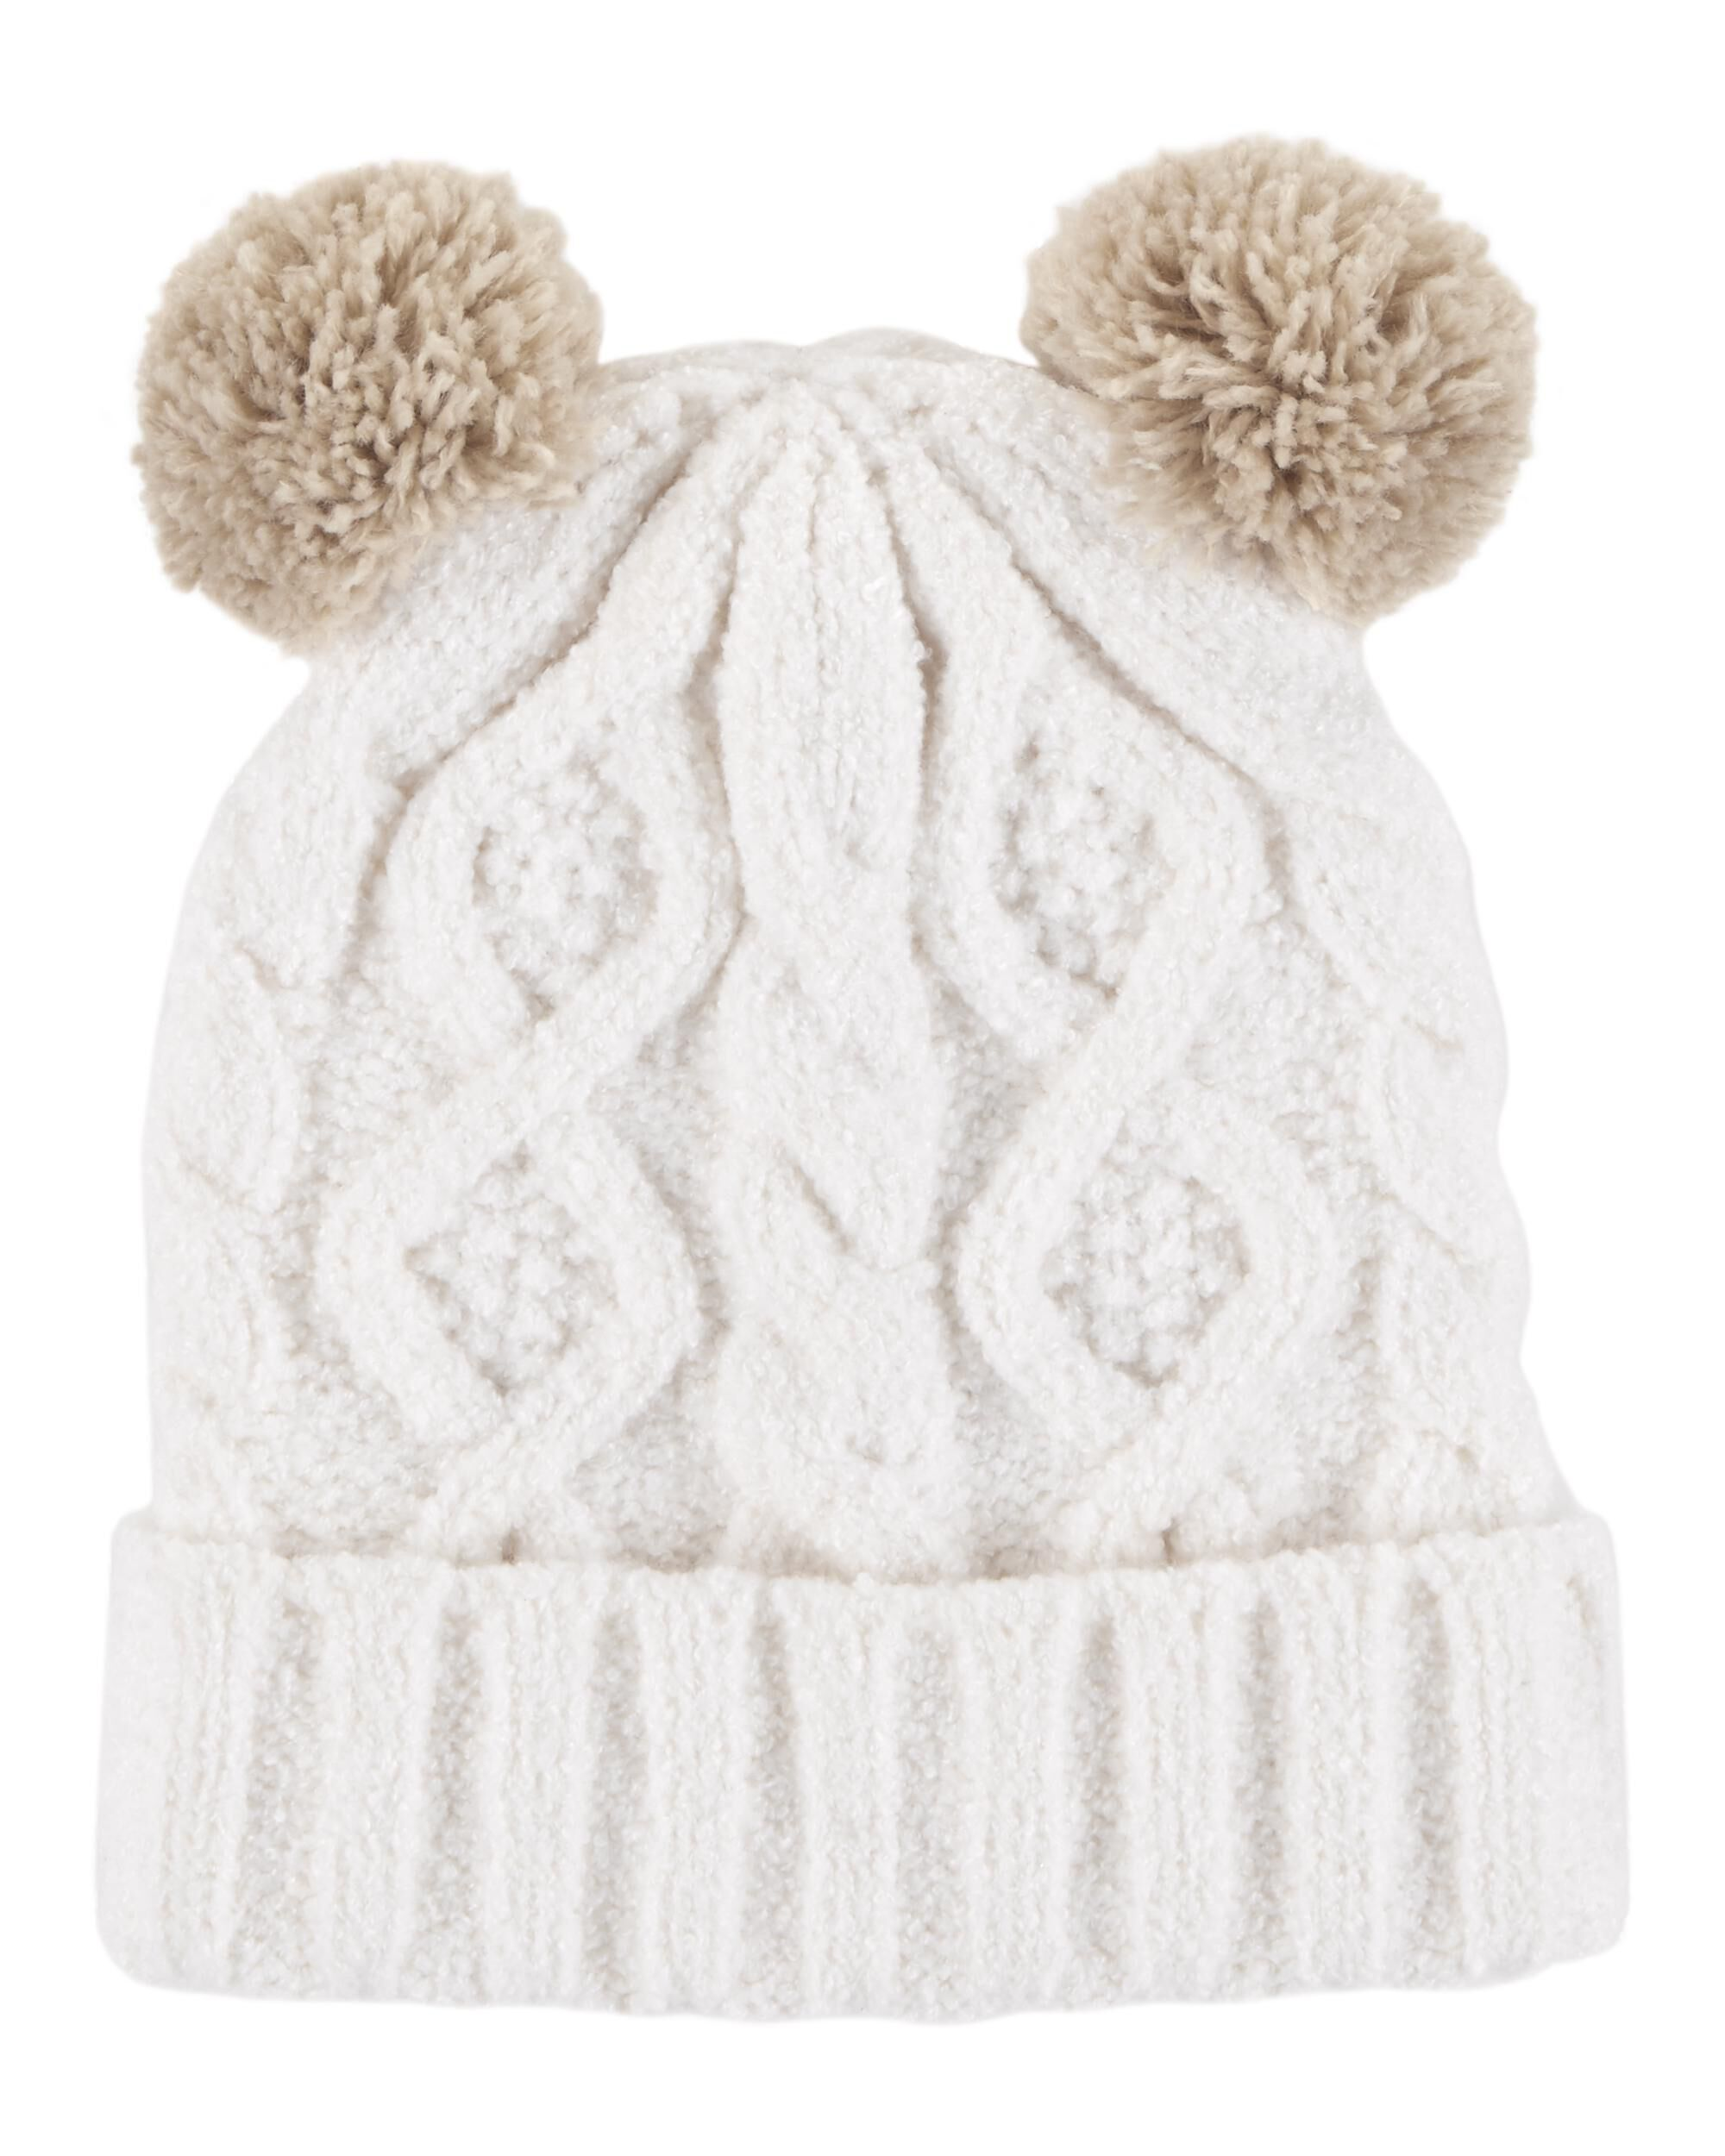 Toddler Girl Pom Pom Cable Knit Hat  a41d4e04772